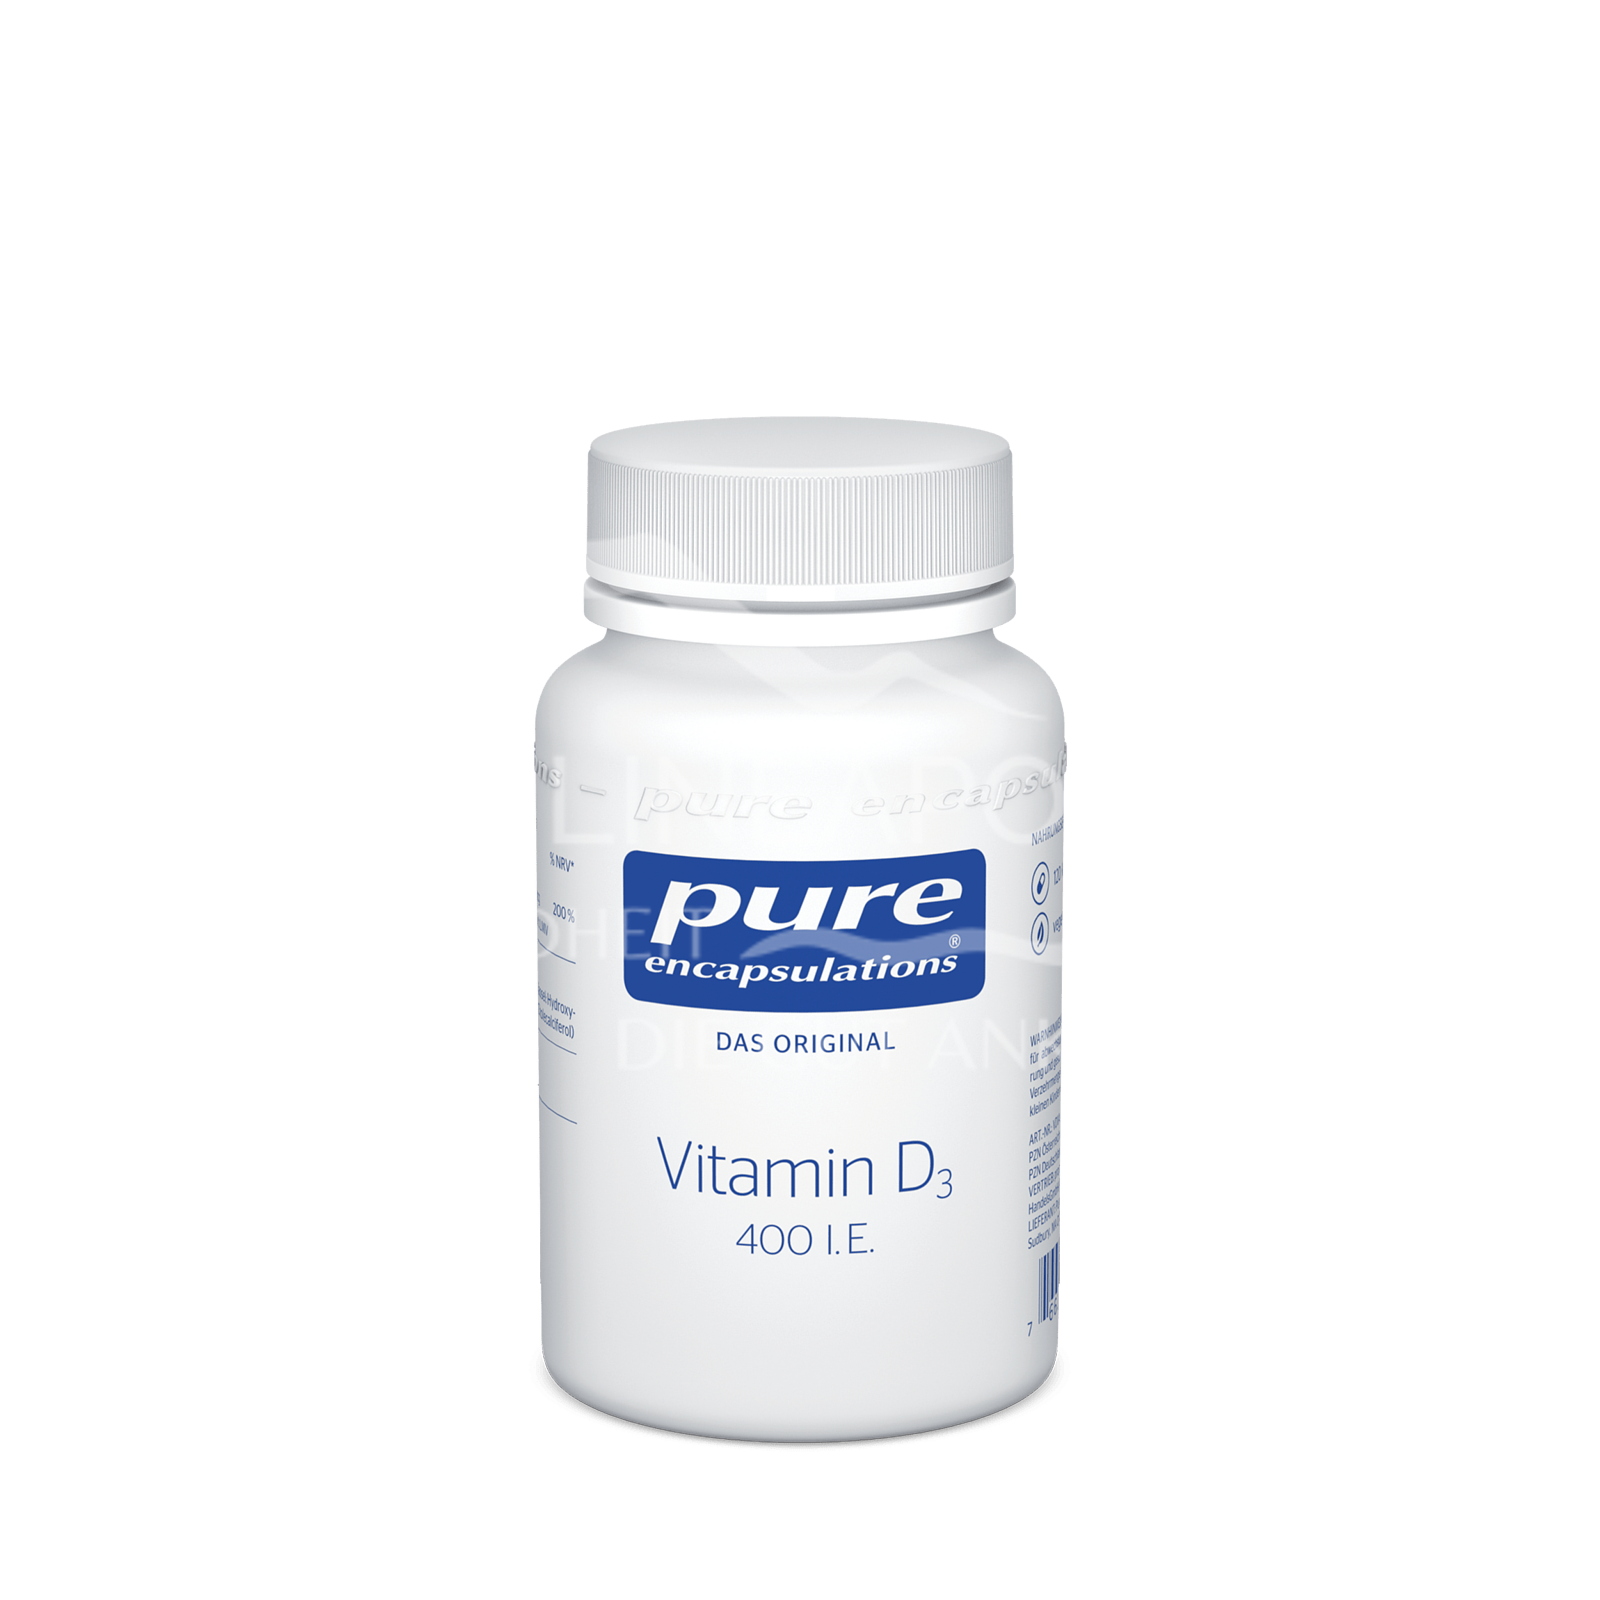 pure encapsulations® Vitamin D3 400 I. E.